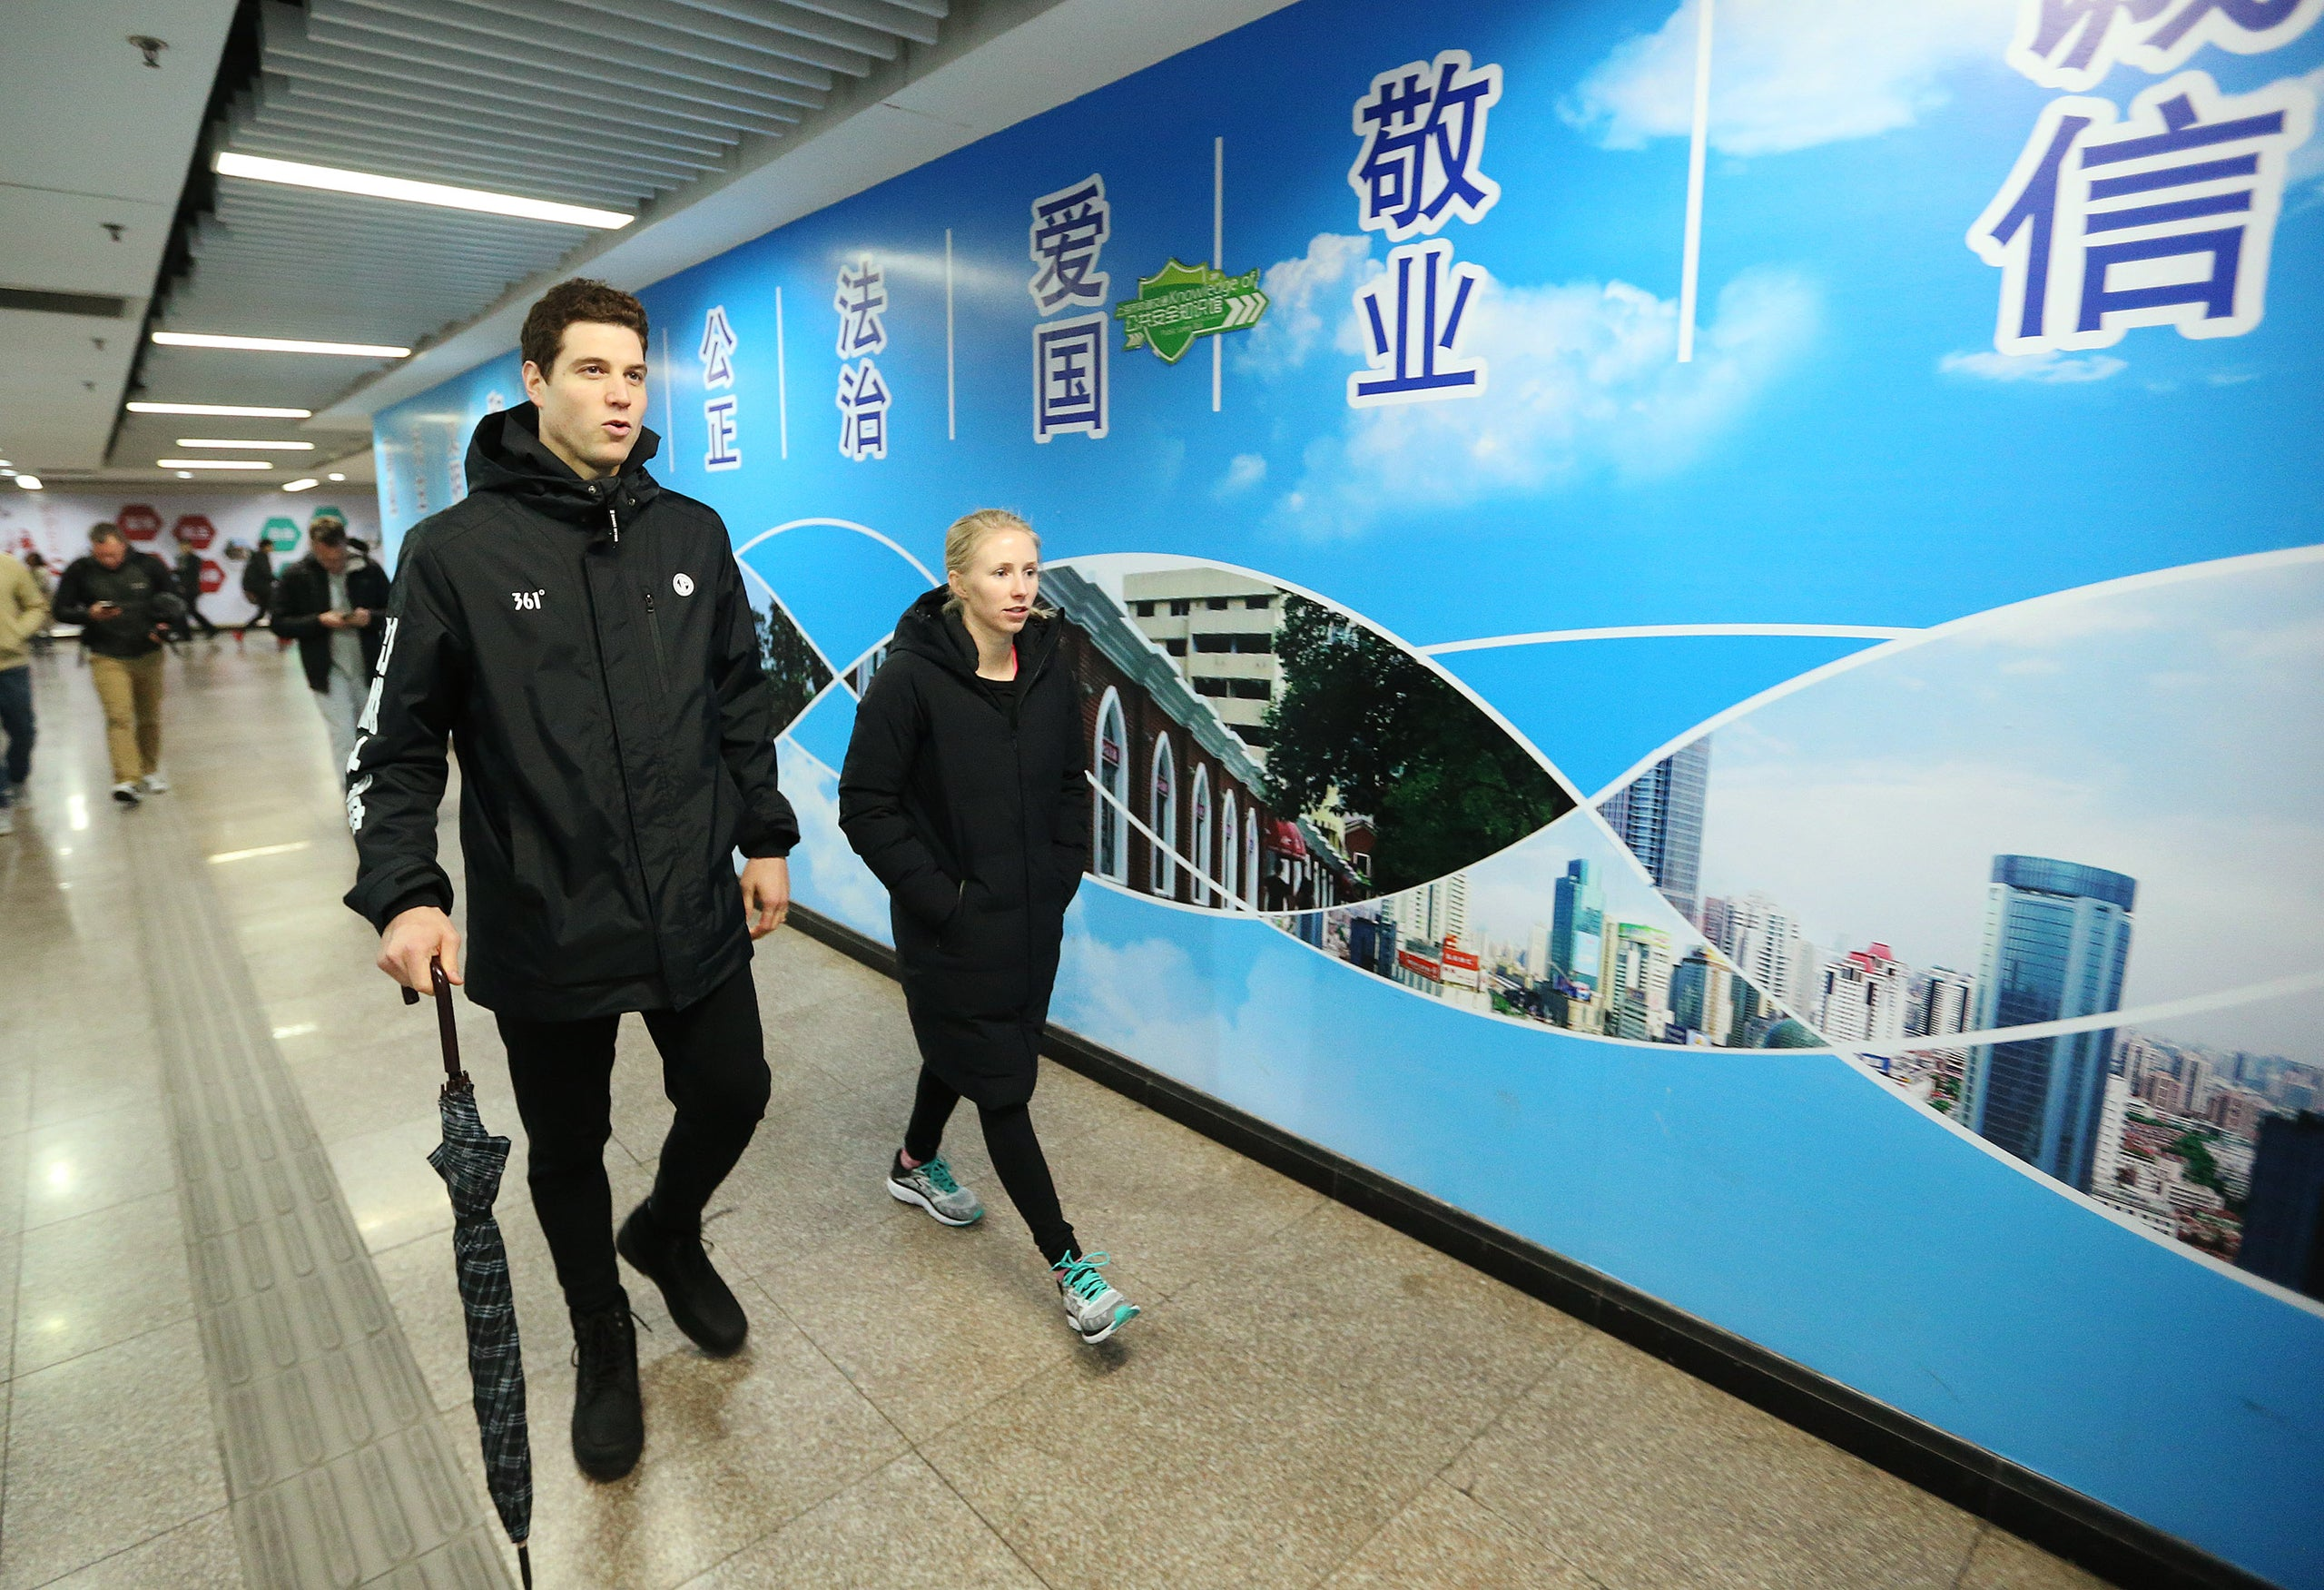 Jeffrey D. Allred, Deseret News Jimmer Fredette walks with his wife Whitney to the metro in Shanghai, China, on Jan. 20, 2018. Fredette is a former BYU Cougar and now plays for the Shanghai Sharks in the Chinese Basketball Association.